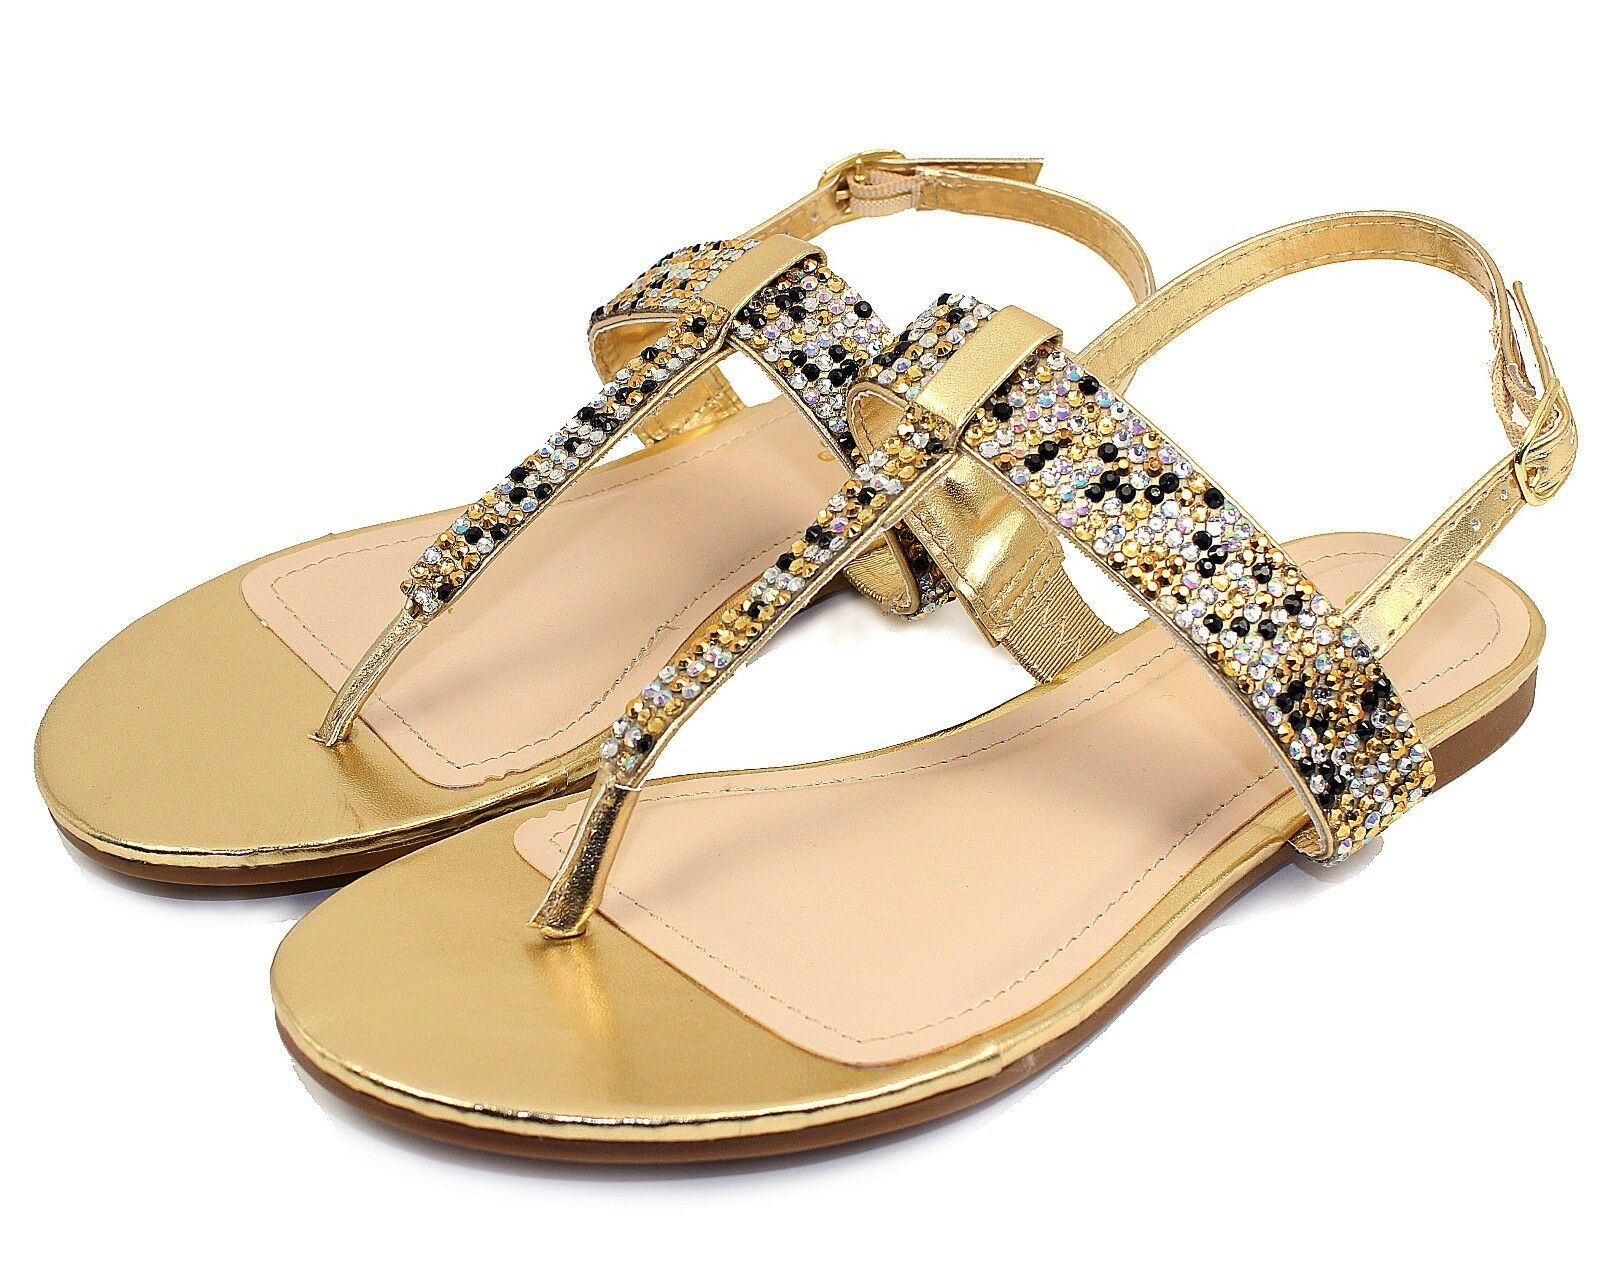 JOSALYN-22 Fushion Bead Flat Women T-Strap Cute Sandals Party Women Flat Shoes Gold 10 8f9f0a